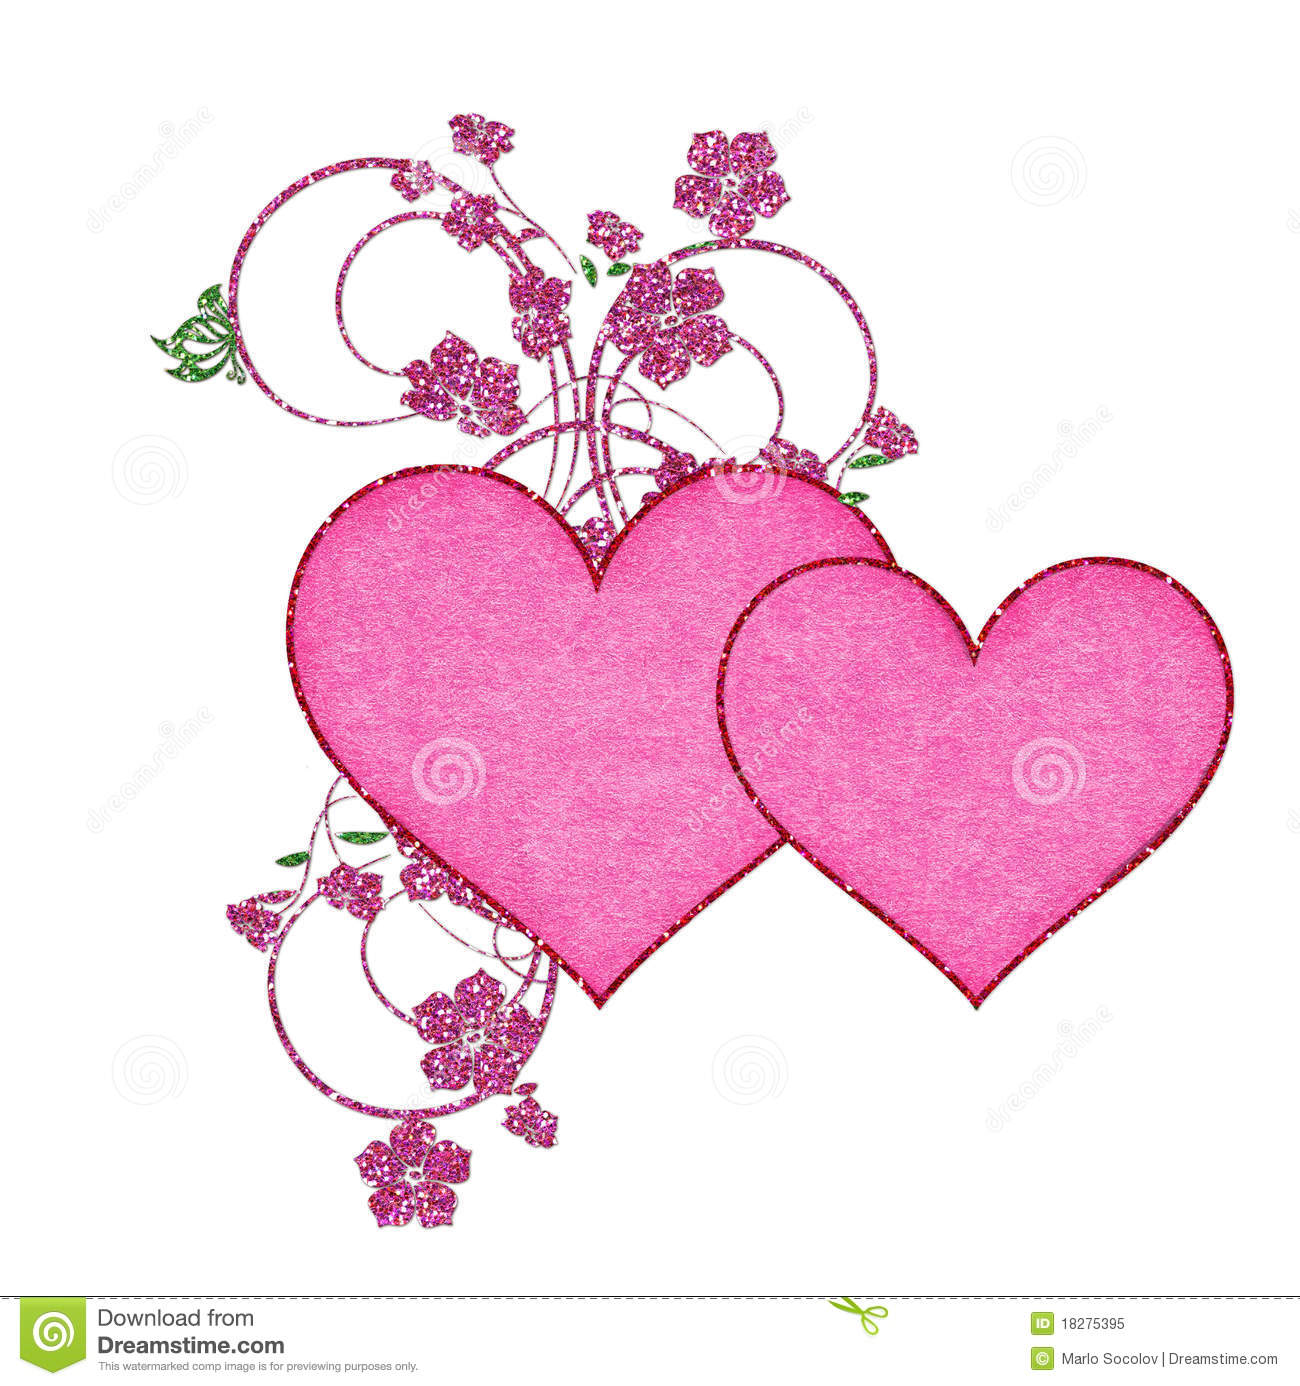 Two Pink Hearts With Glitter Flowers Royalty Free Stock Photo - Image ...